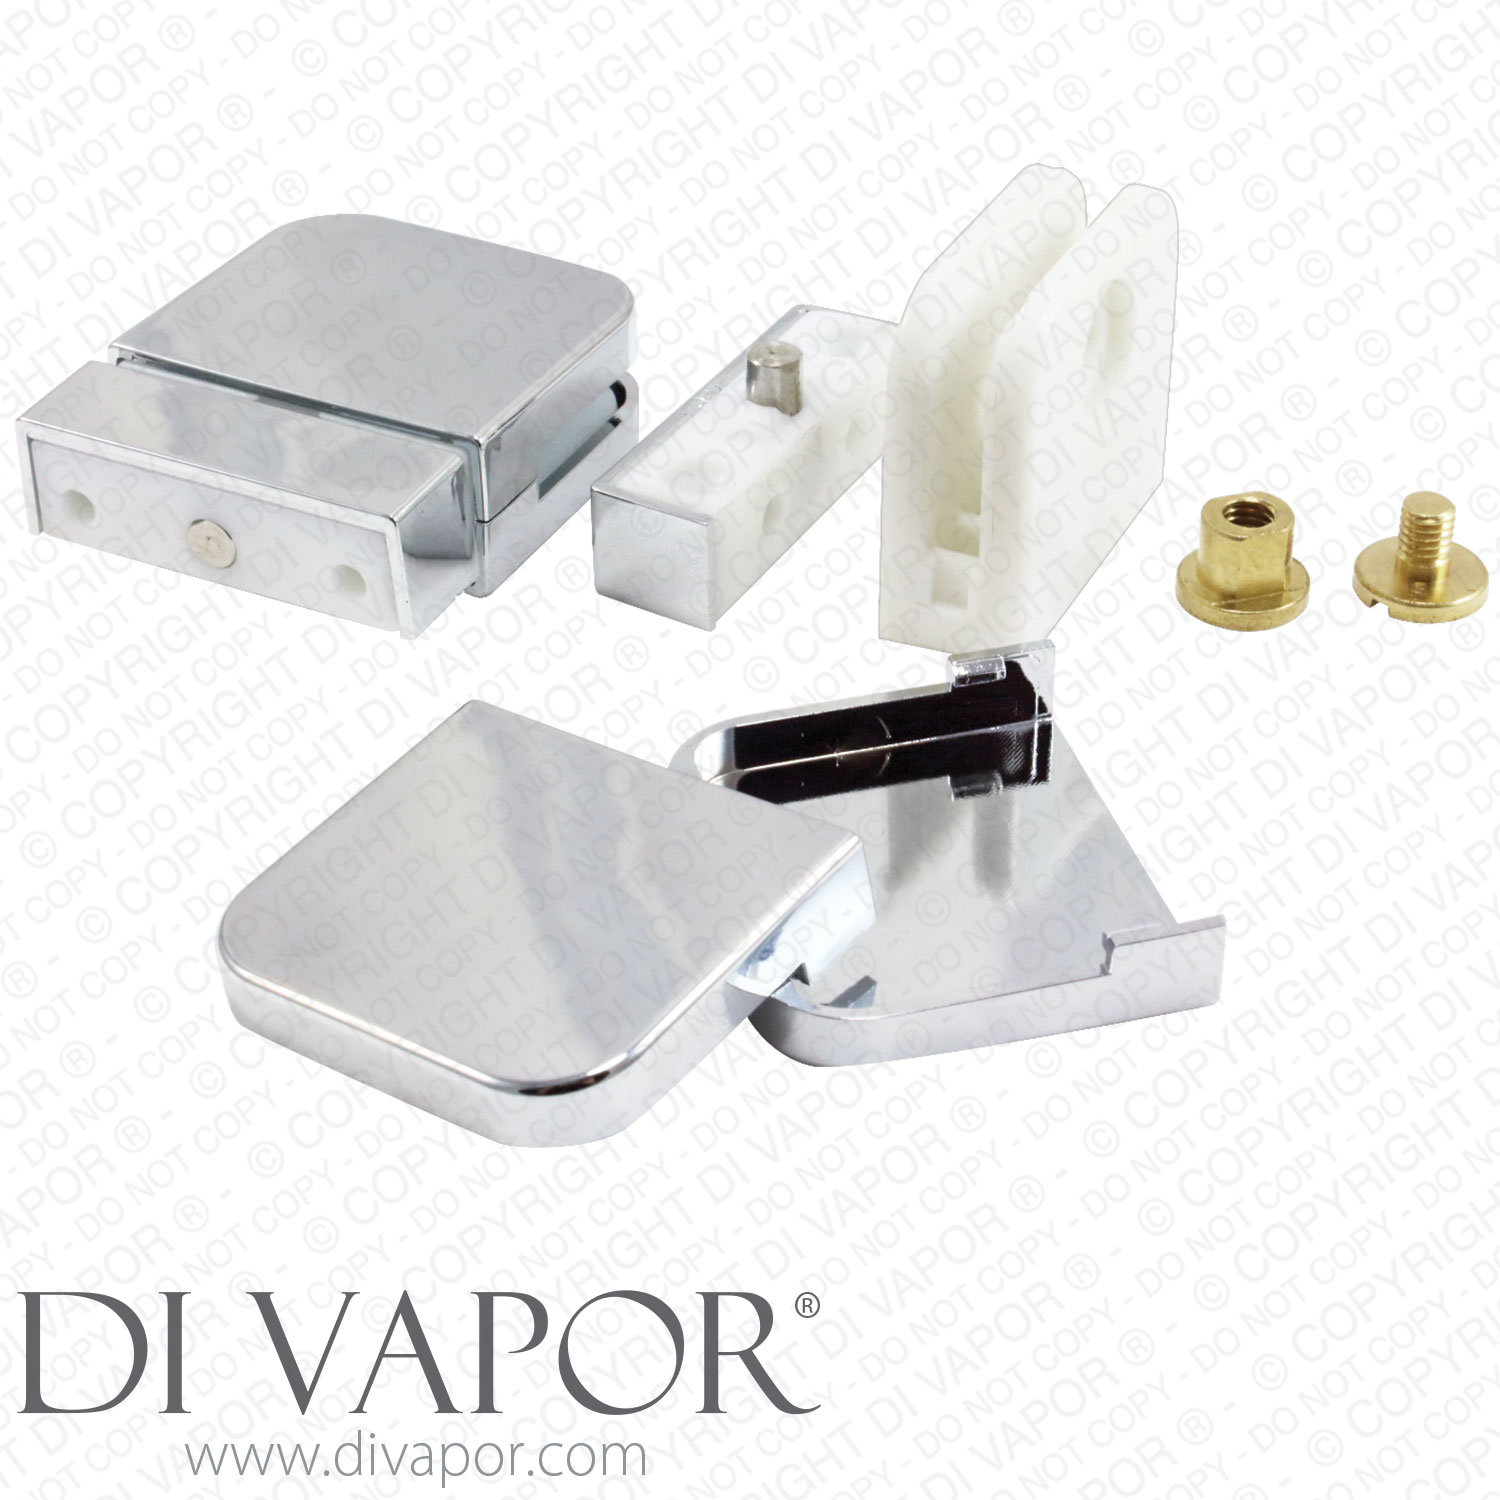 Glass Shower Door Hinges : Plastic glass shower door pivot hinge for mm clamp